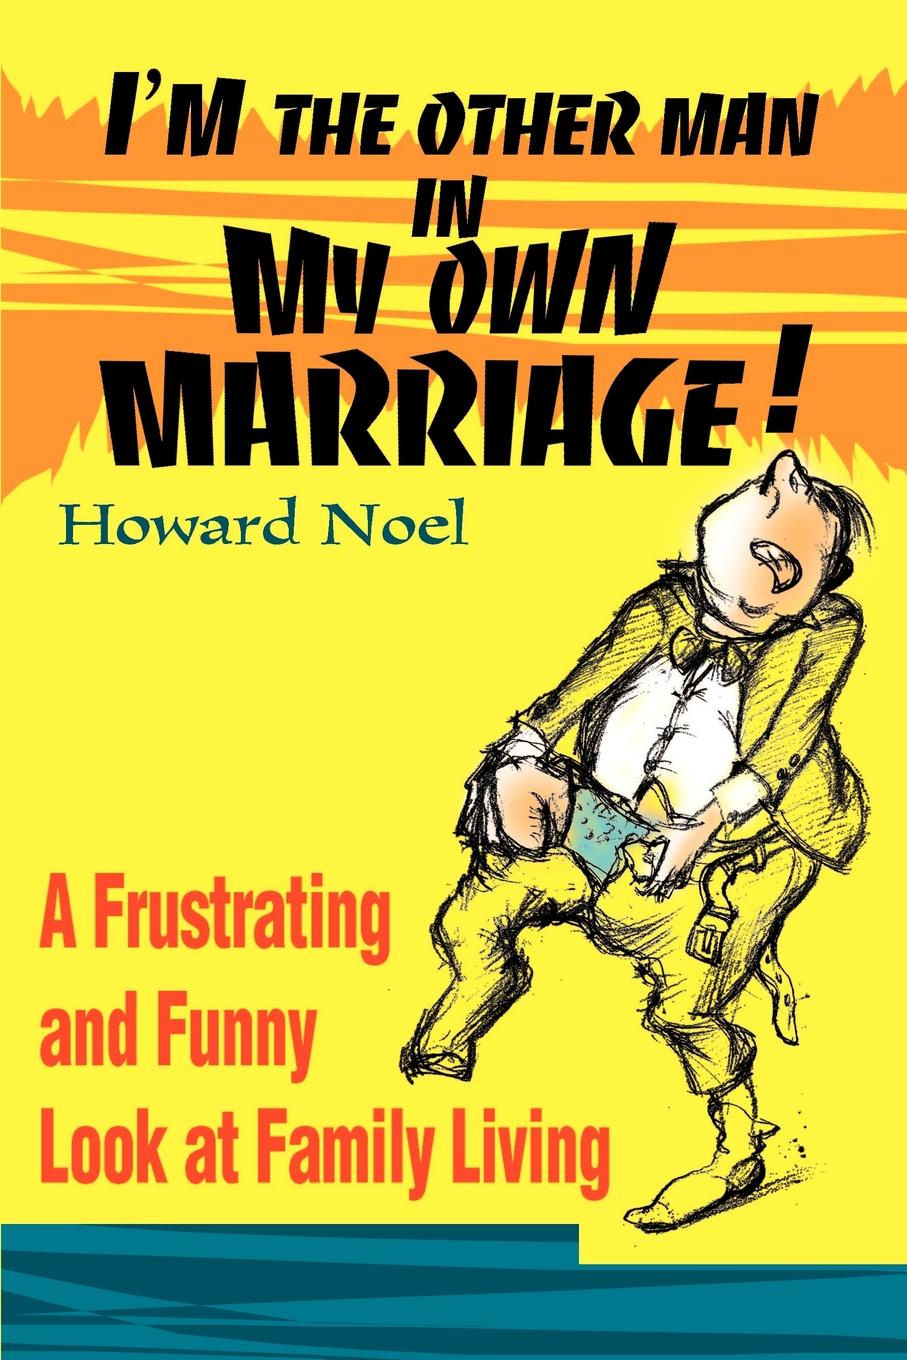 лучшая цена Howard Noel I'm the Other Man in My Own Marriage!. A Frustrating and Funny Look at Family Living